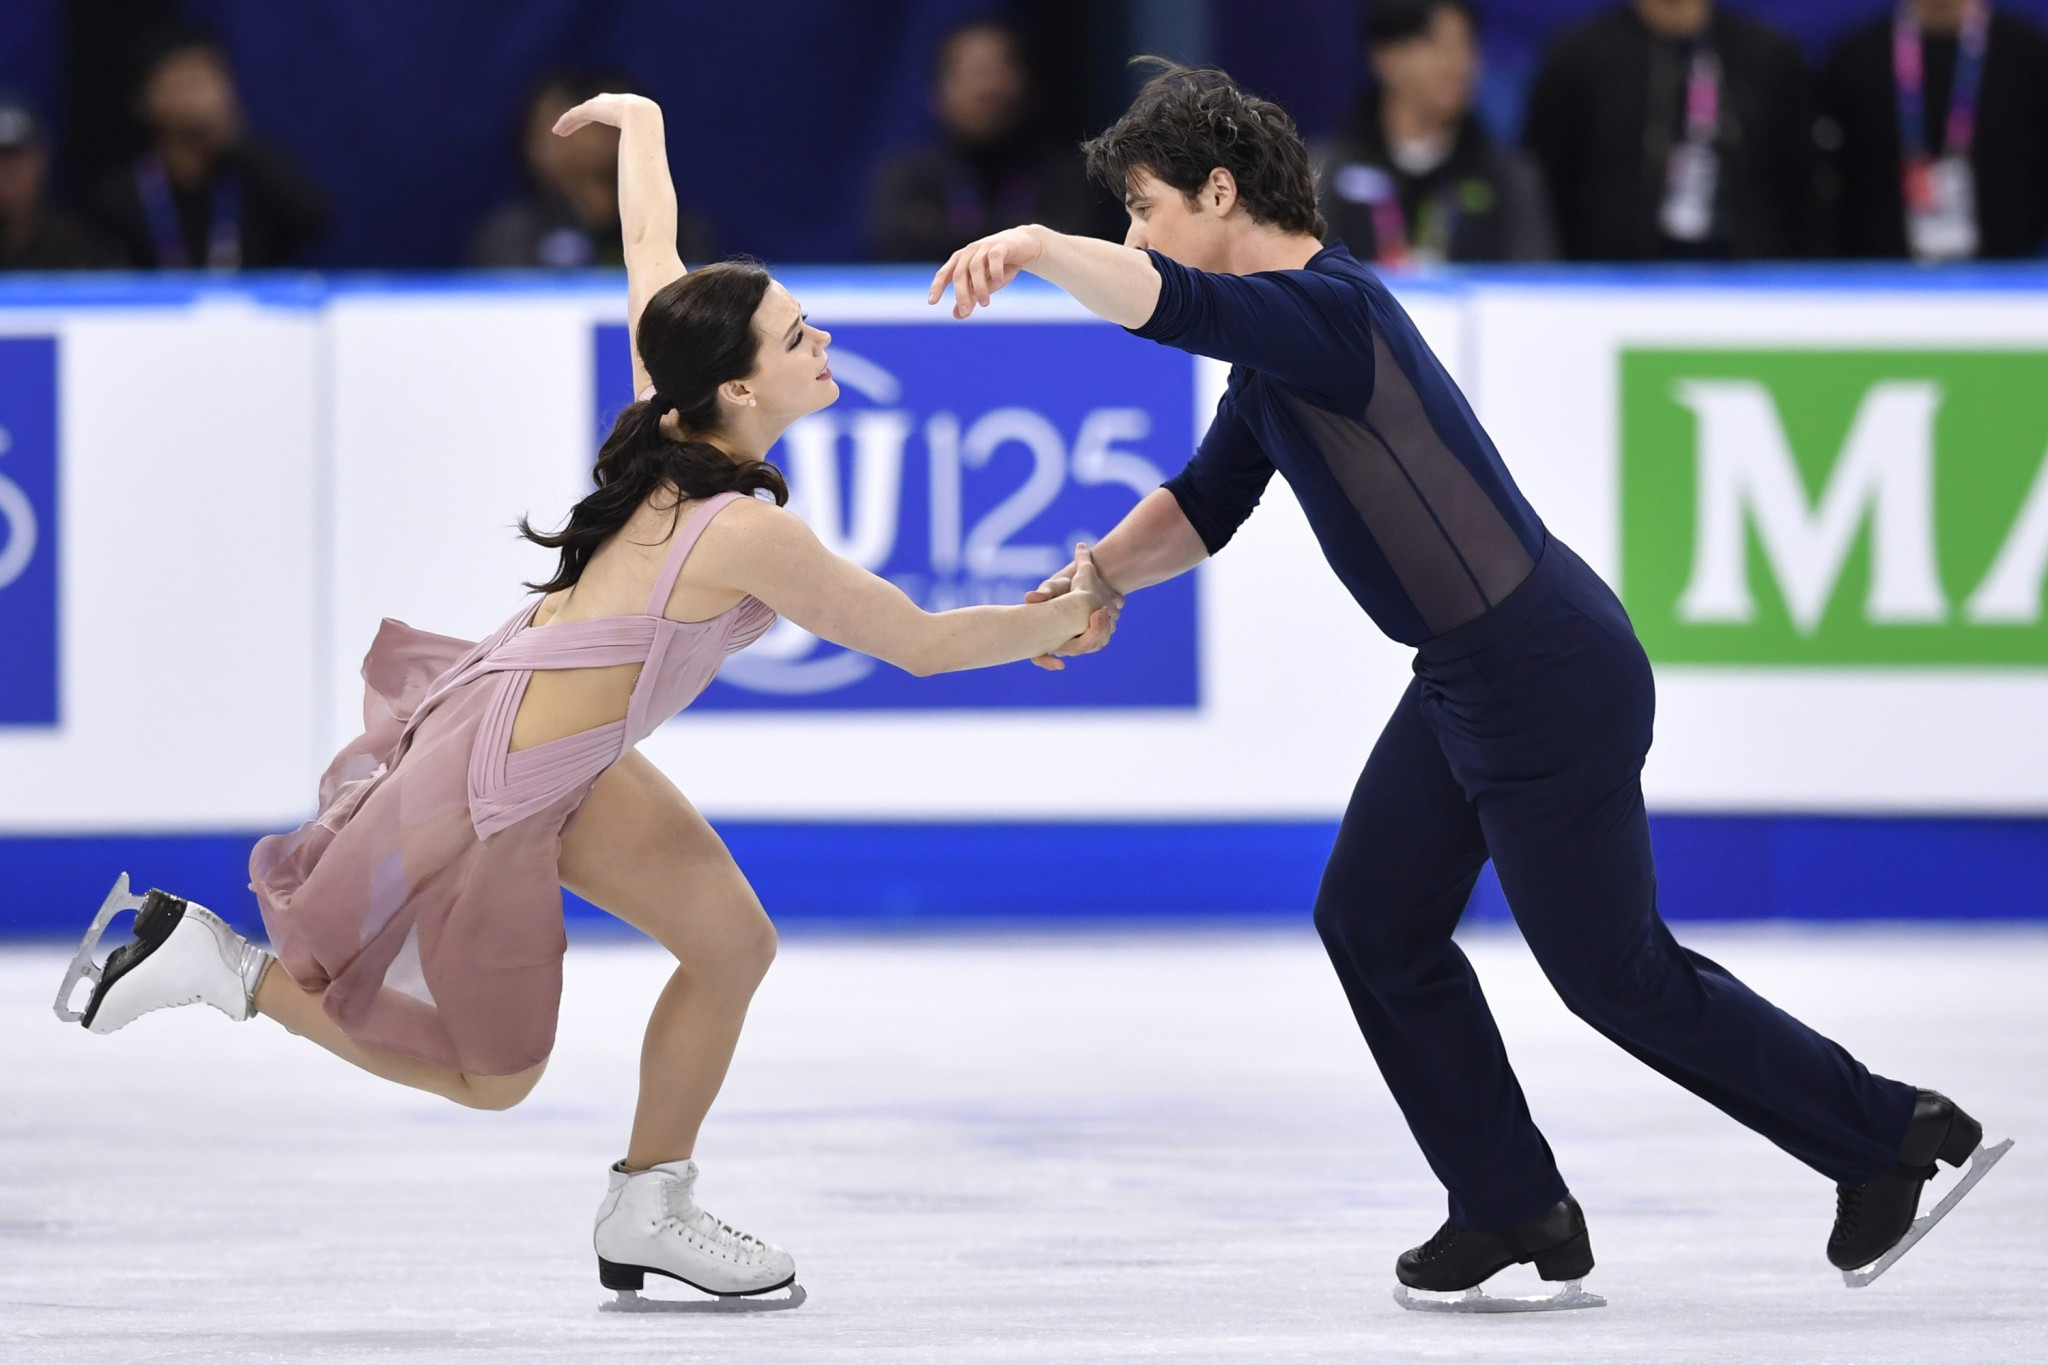 Canadian figure skaters Tessa Virtue and Scott Moir have selected music from the movie Moulin Rouge to compete to during the 2018 Olympic season ©Getty Images